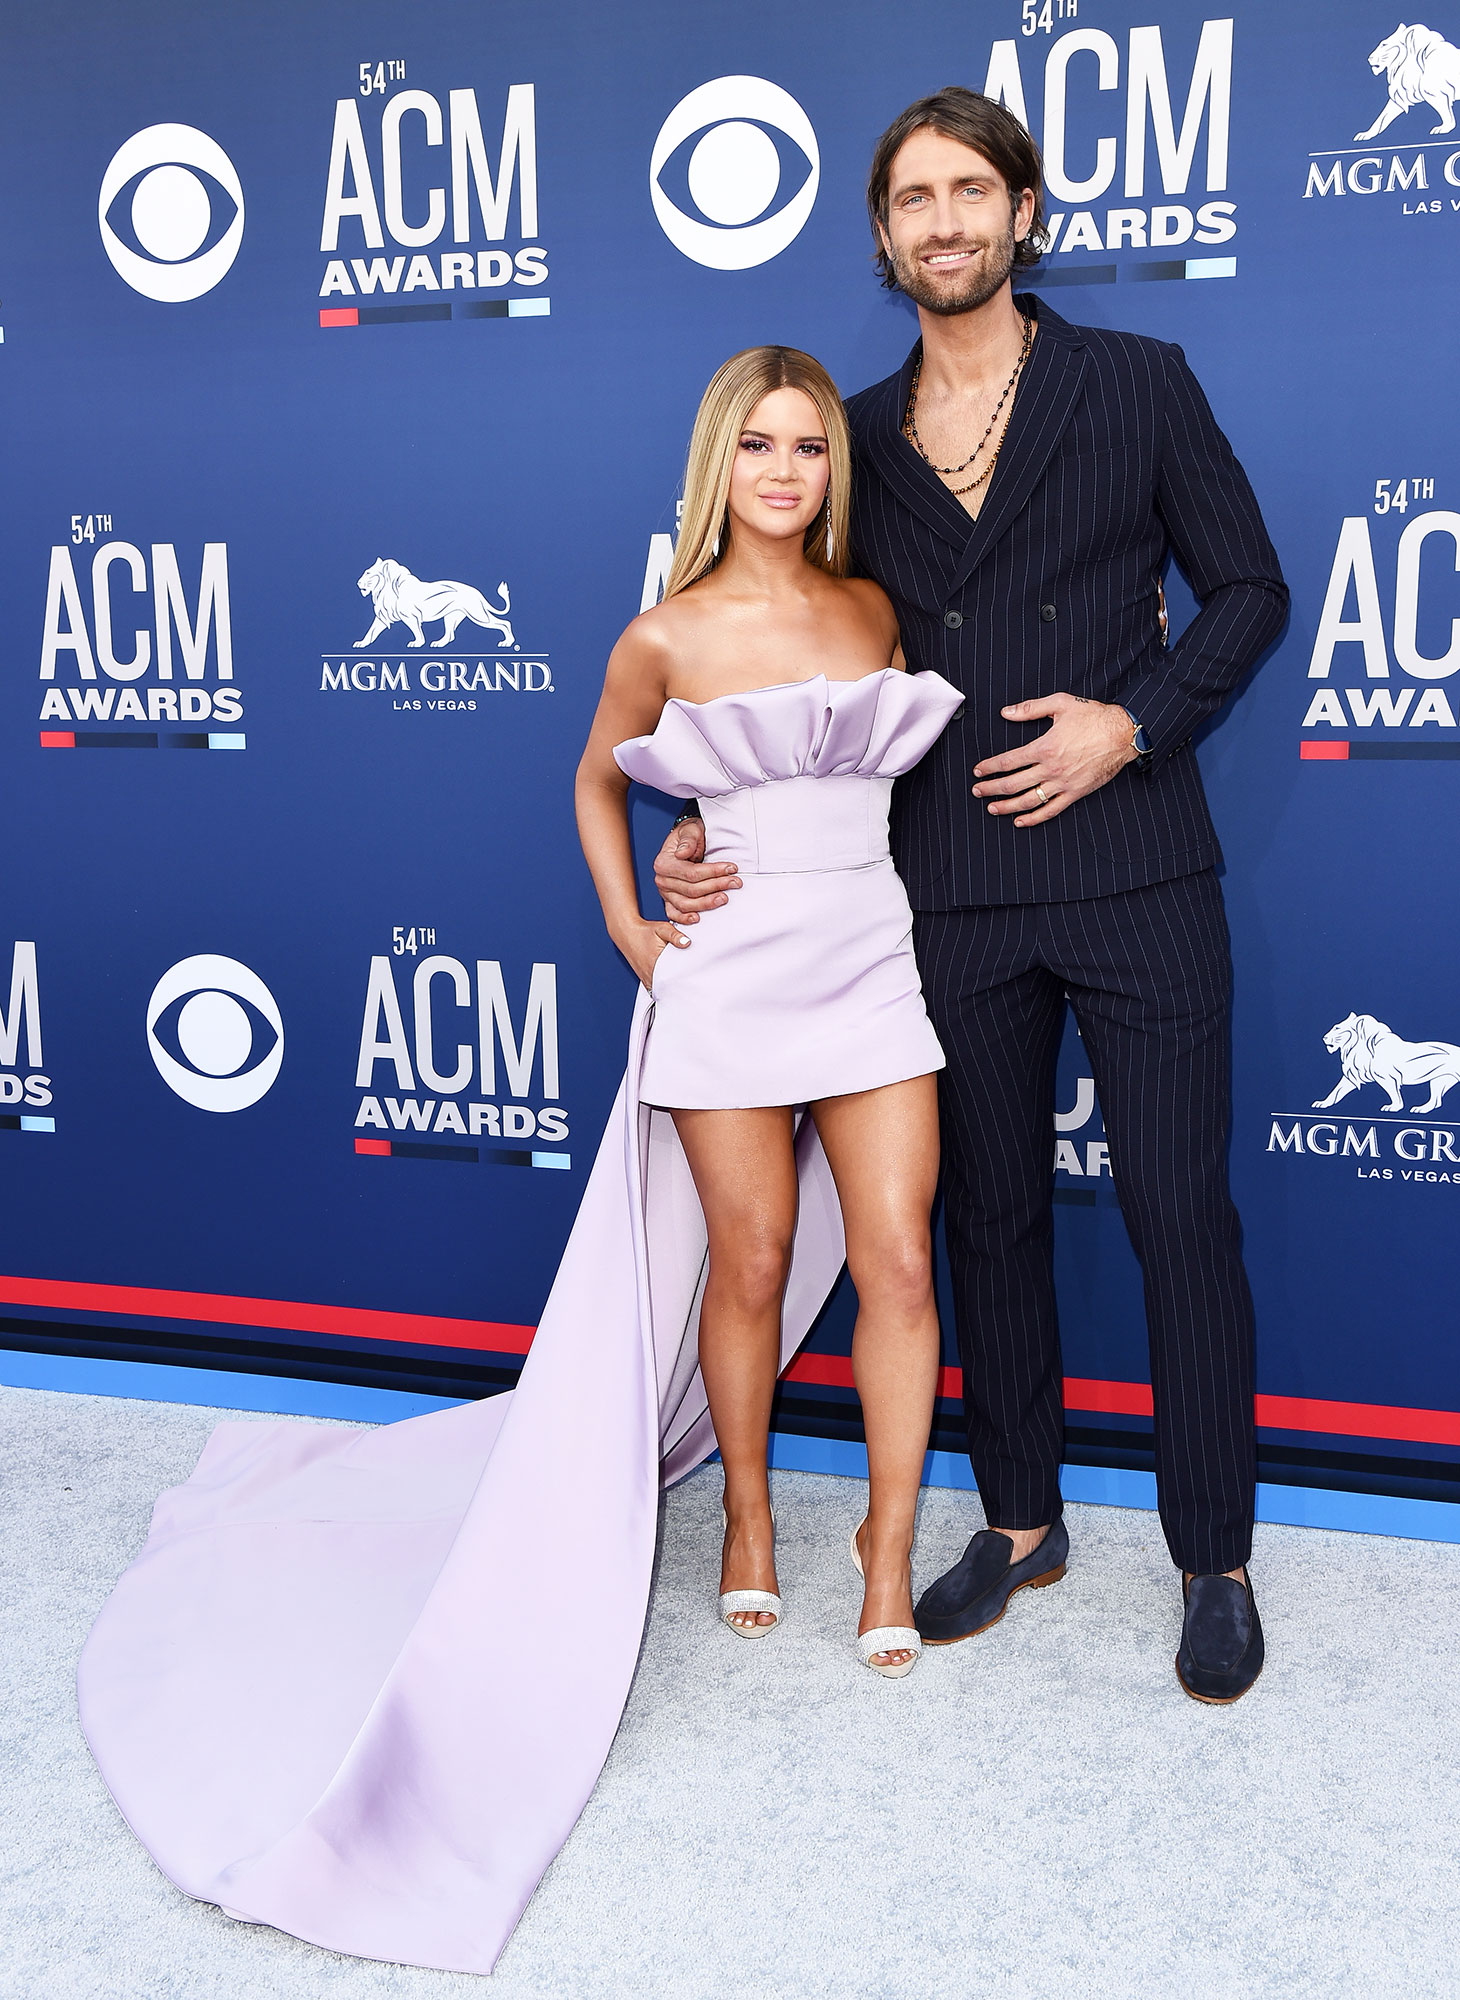 Maren Morris and Ryan Hurd Smoking Hot Couples Style at the ACMs - Showing off their fun fashion sense, the songstress kept things short and sweet in a lavender Christian Siriano mini, while her hubby rocked a pinstriped double-breasted suit.